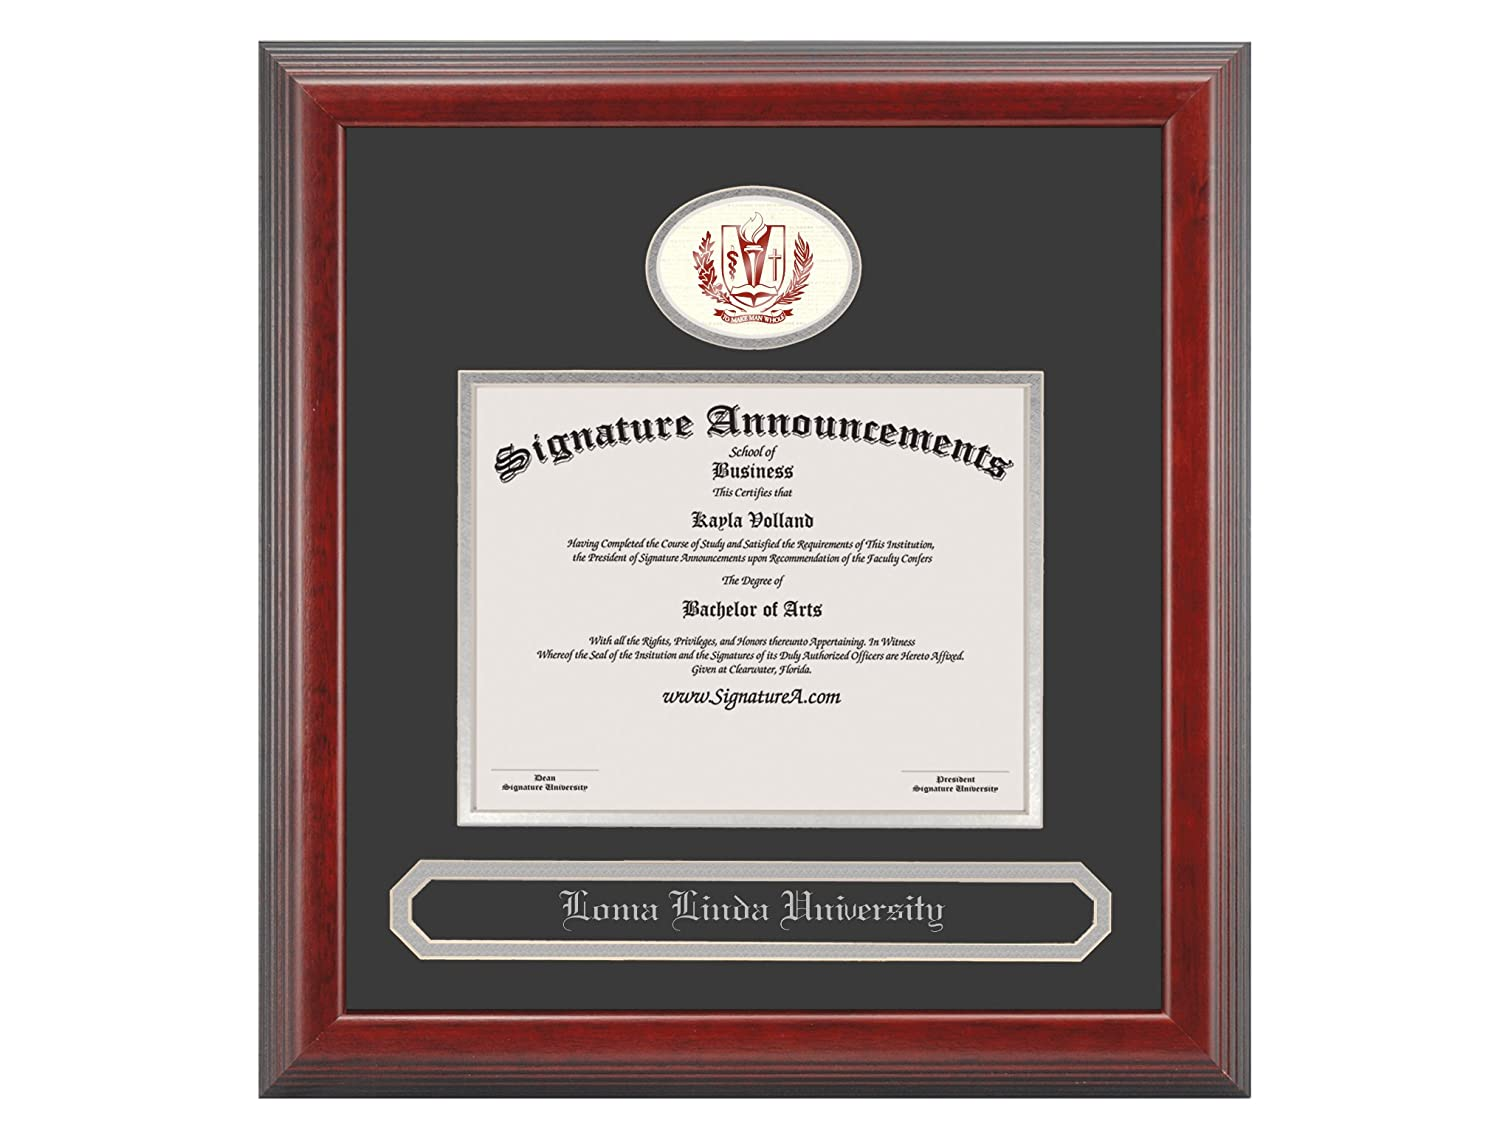 Signature Announcements Loma-Linda-University Doctorate Sculpted Foil Seal /& Name Graduation Diploma Frame 20 x 20 Cherry